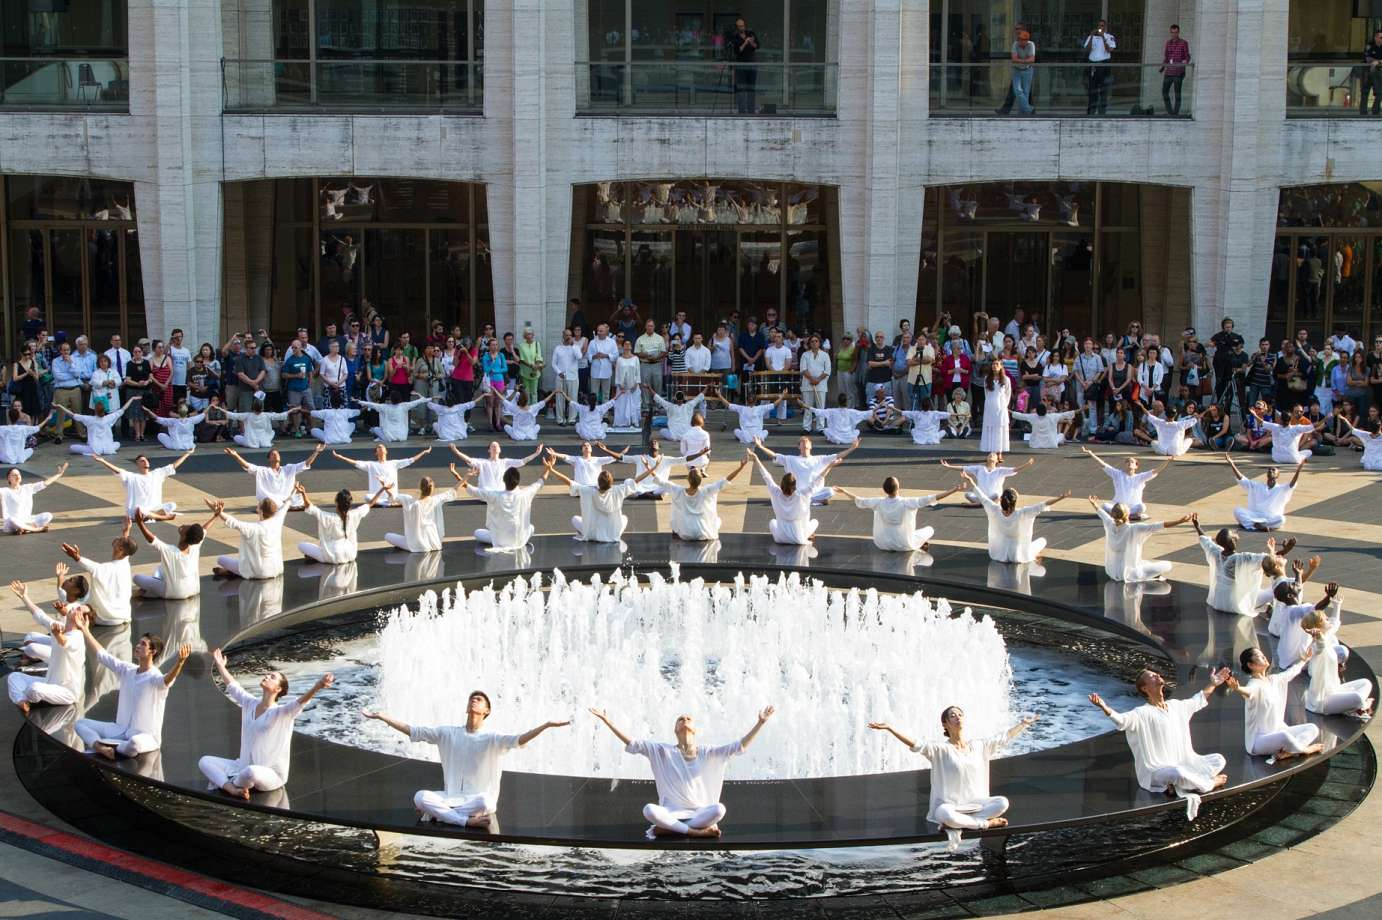 Dancers dressed in white surround Lincoln Center's Revron Fountain during the Table of Silence